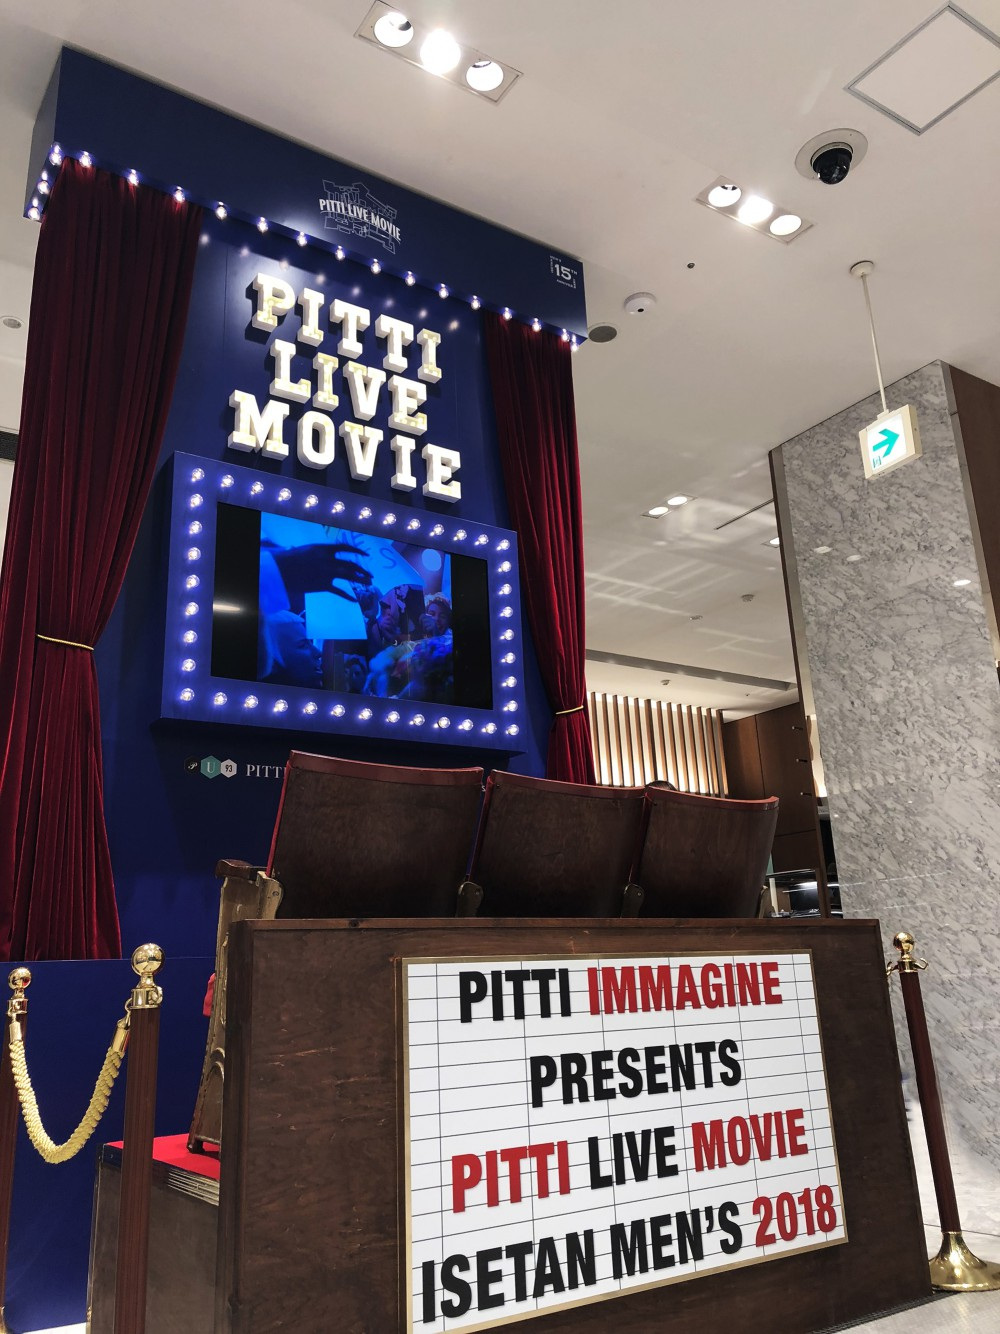 "PITTI IMMAGINE UOMO 93 ""PITTI LIVE MOVIE"" at ISETAN MEN'S"